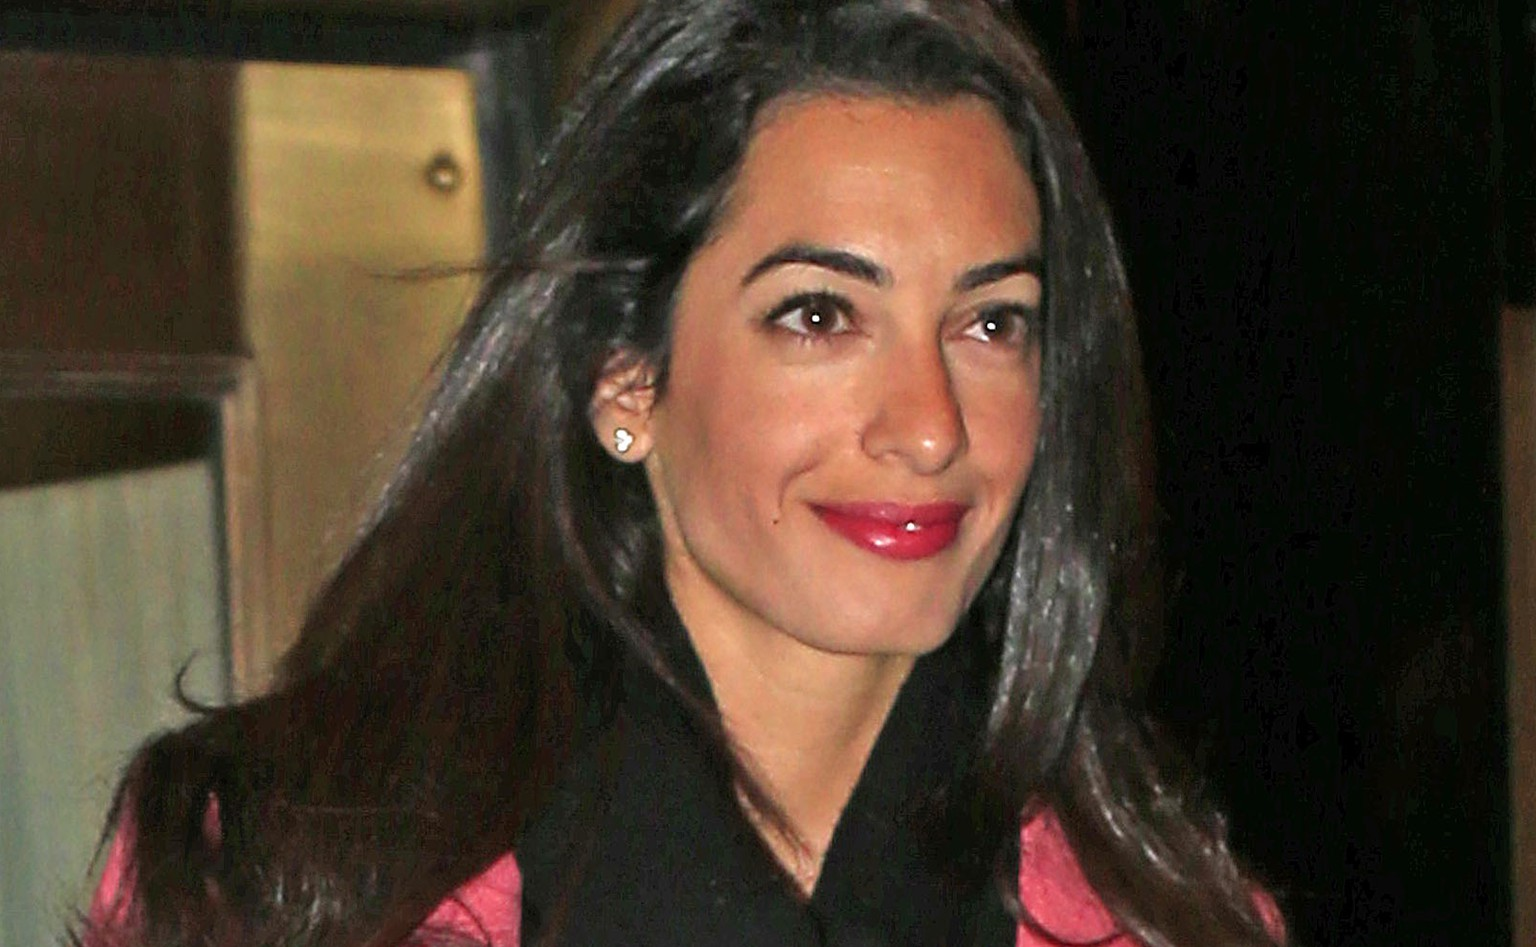 Amal Alamuddin, George Clooney's new rumored girlfriend, seen outside the Carlyle hotel on her way to dinner in New York City.